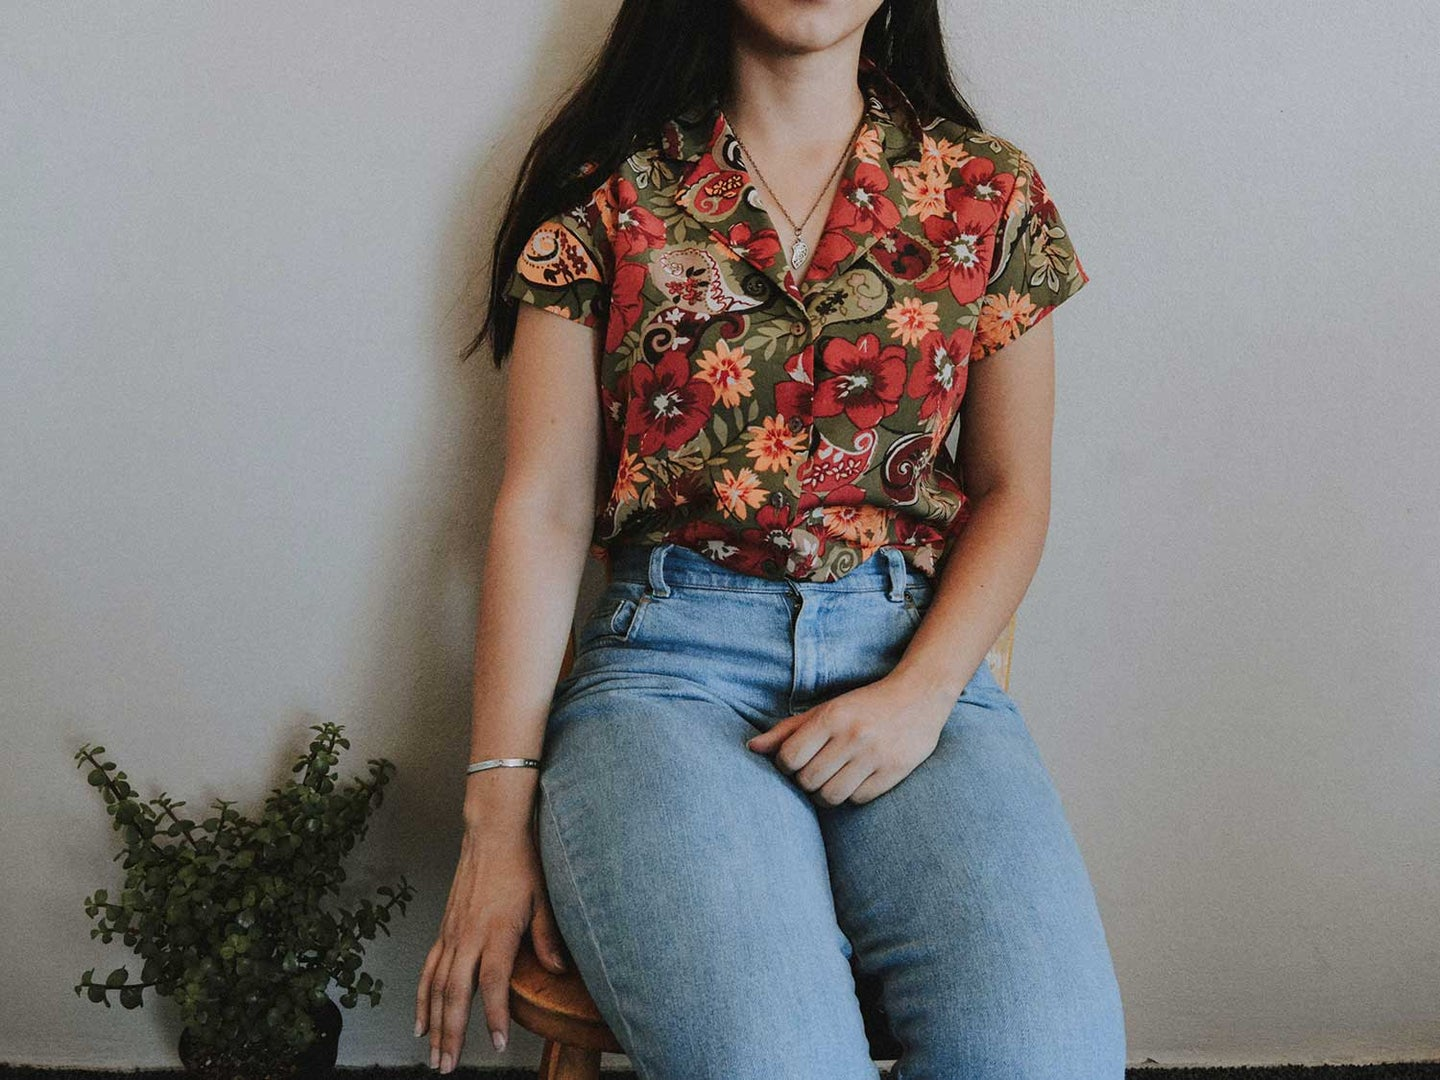 Woman wearing jeans and sitting beside green plant.